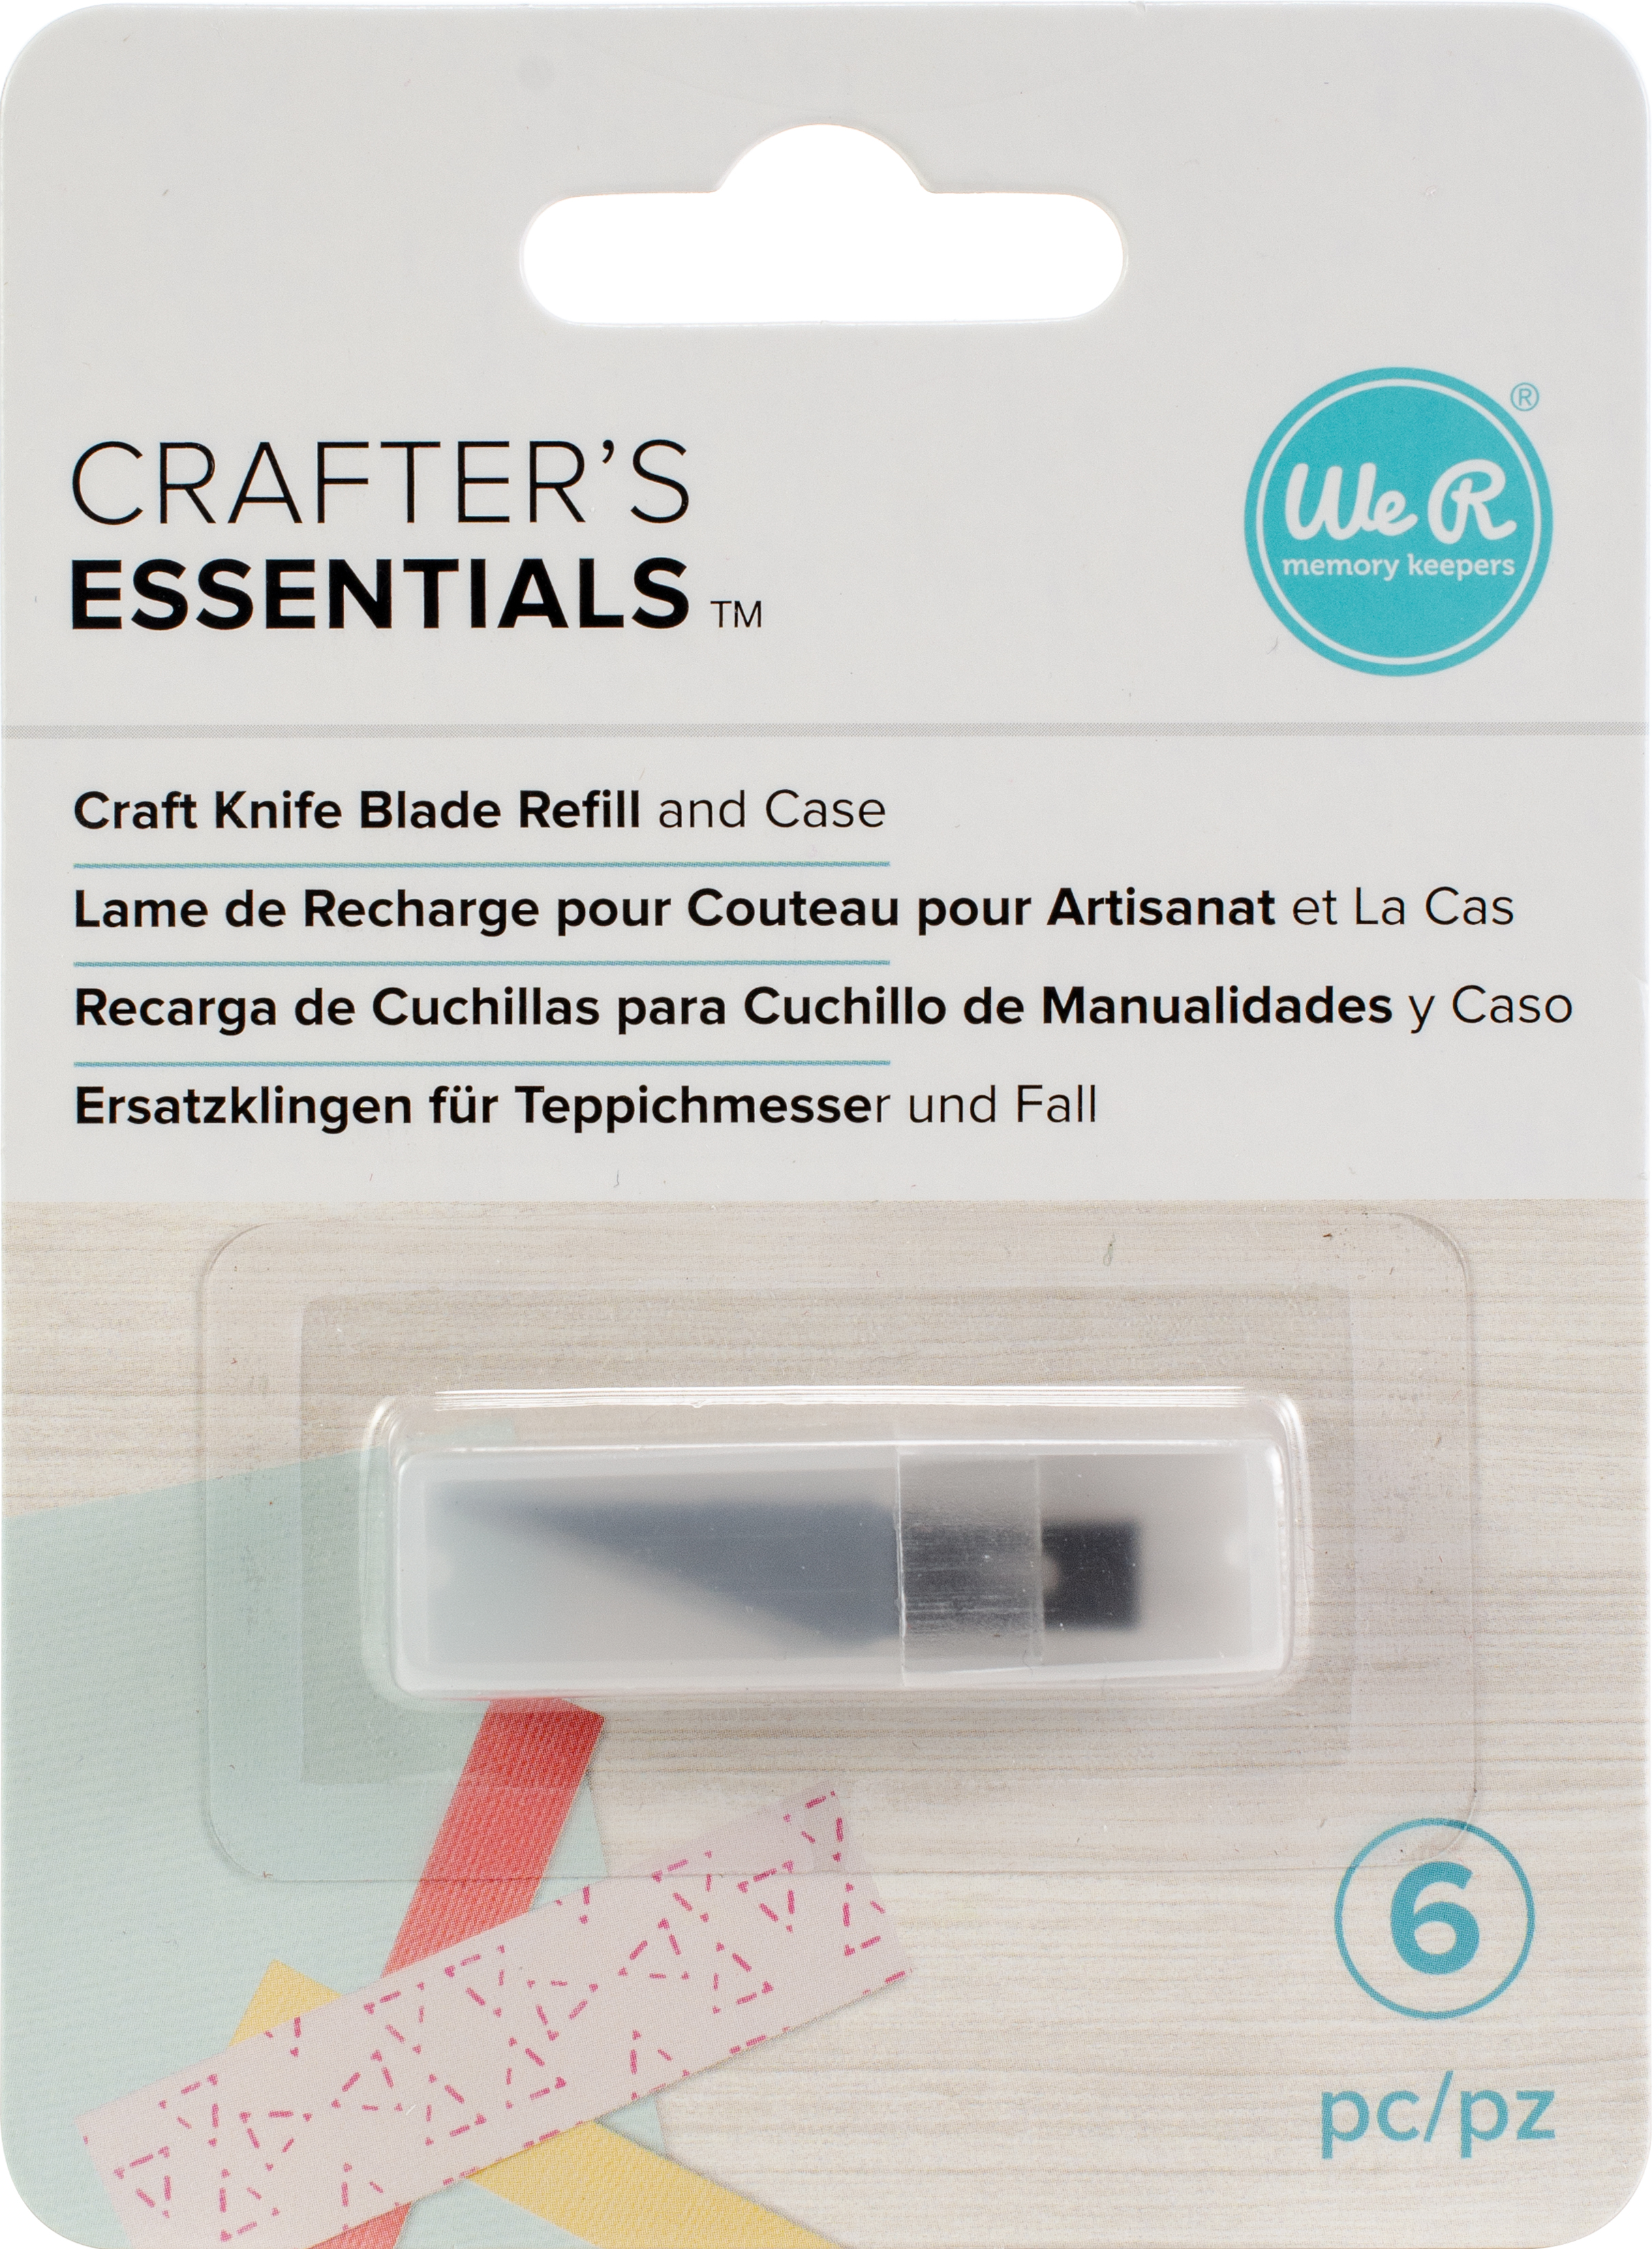 We R Memory Keepers - Craft Knife Blade Refills